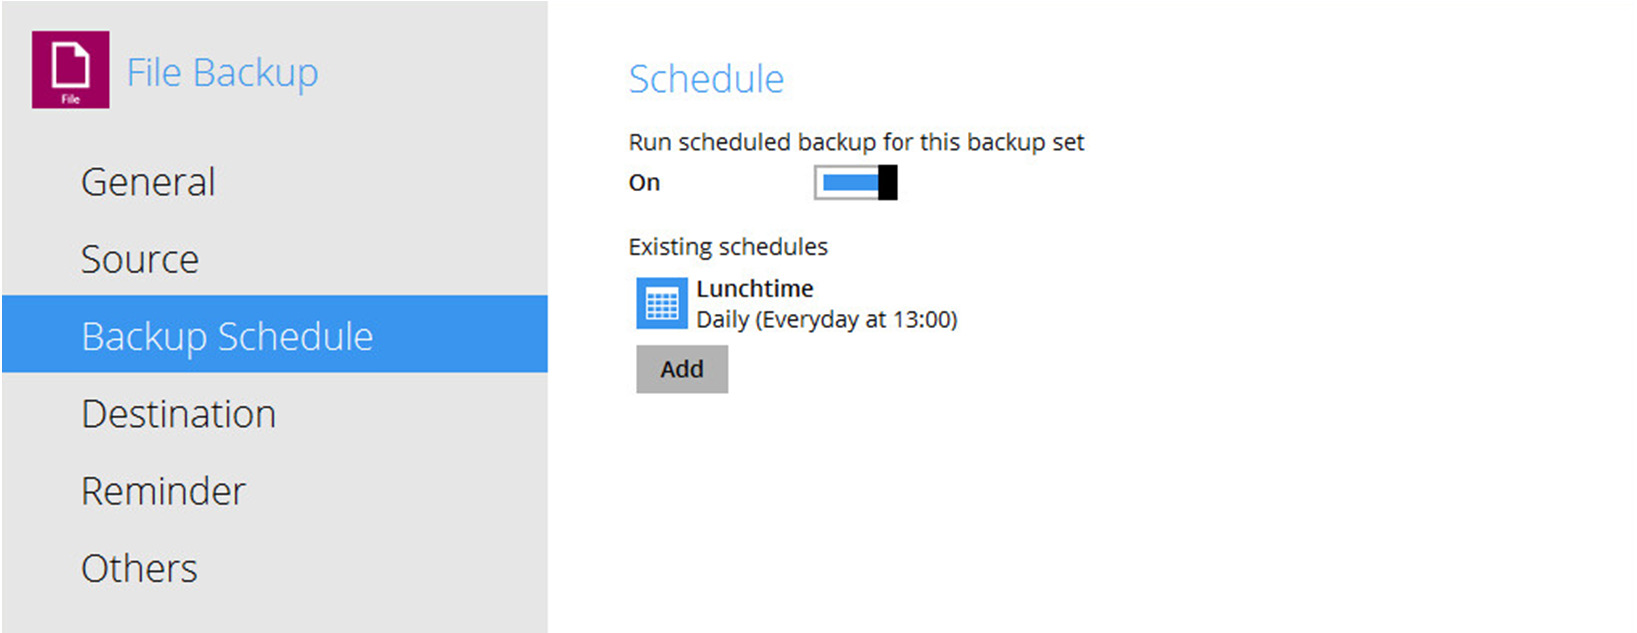 Select the backup set that you would like to create a backup schedule for.